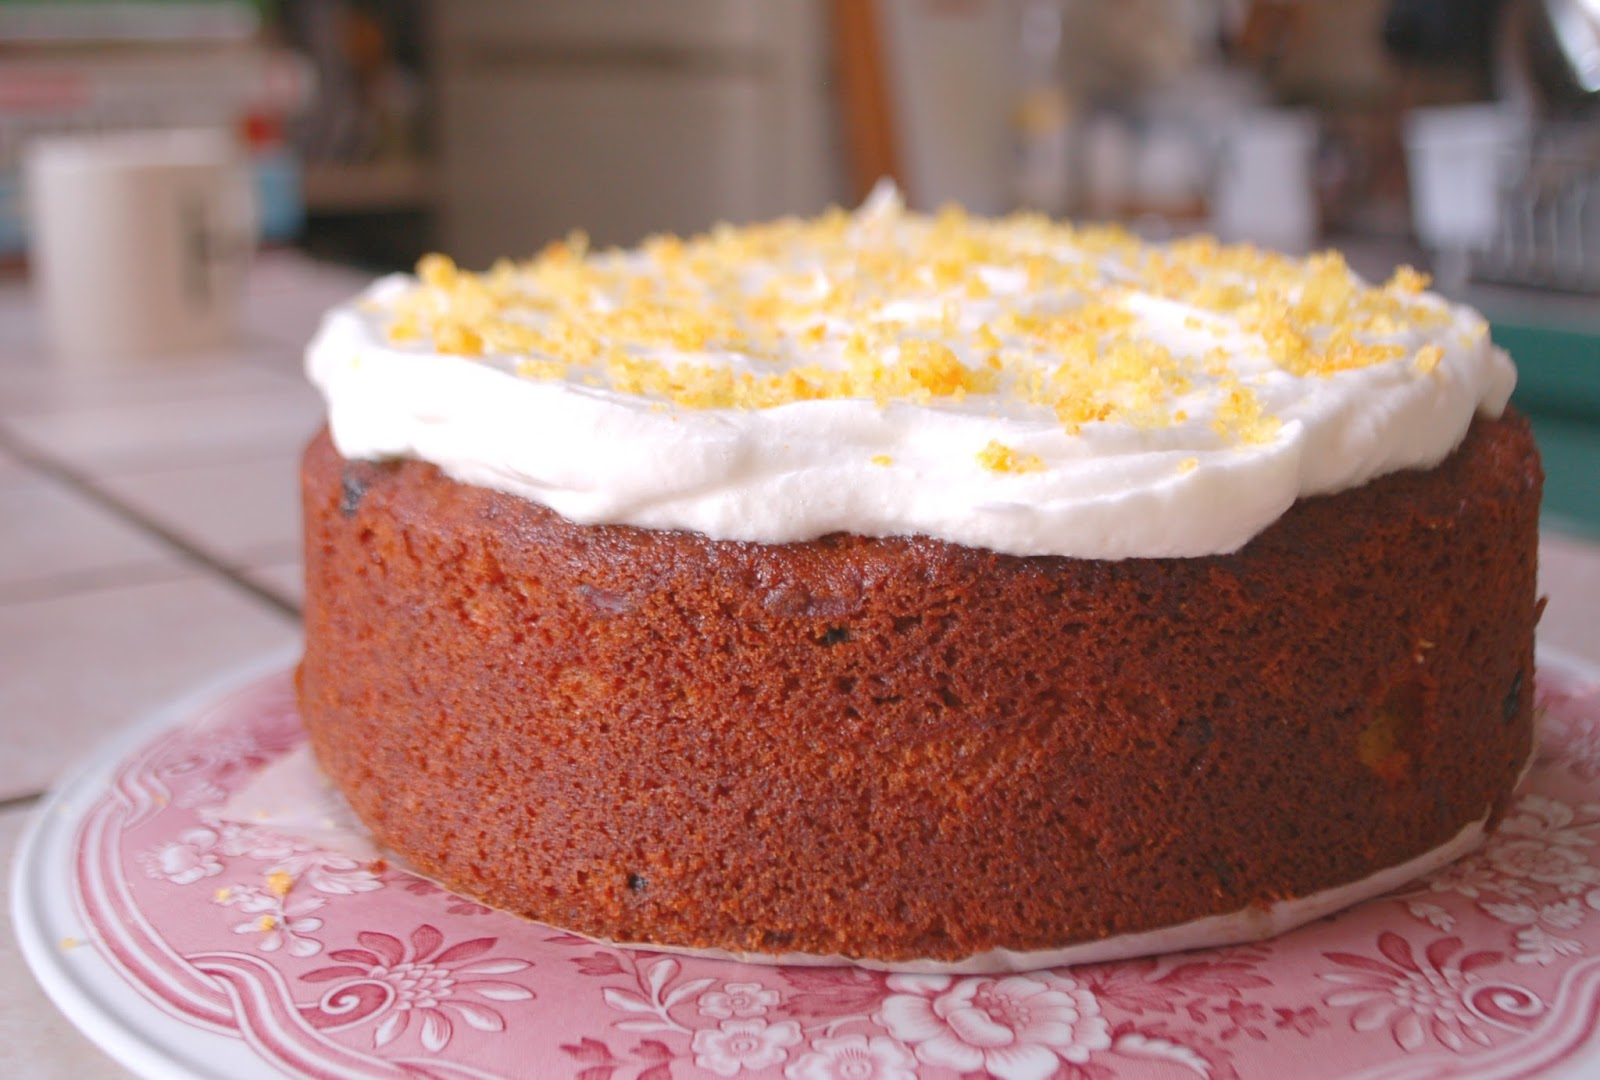 Carrot Cake Recipe Uk No Nuts: The Spice Garden: Frosted Carrot And Parsnip Cake